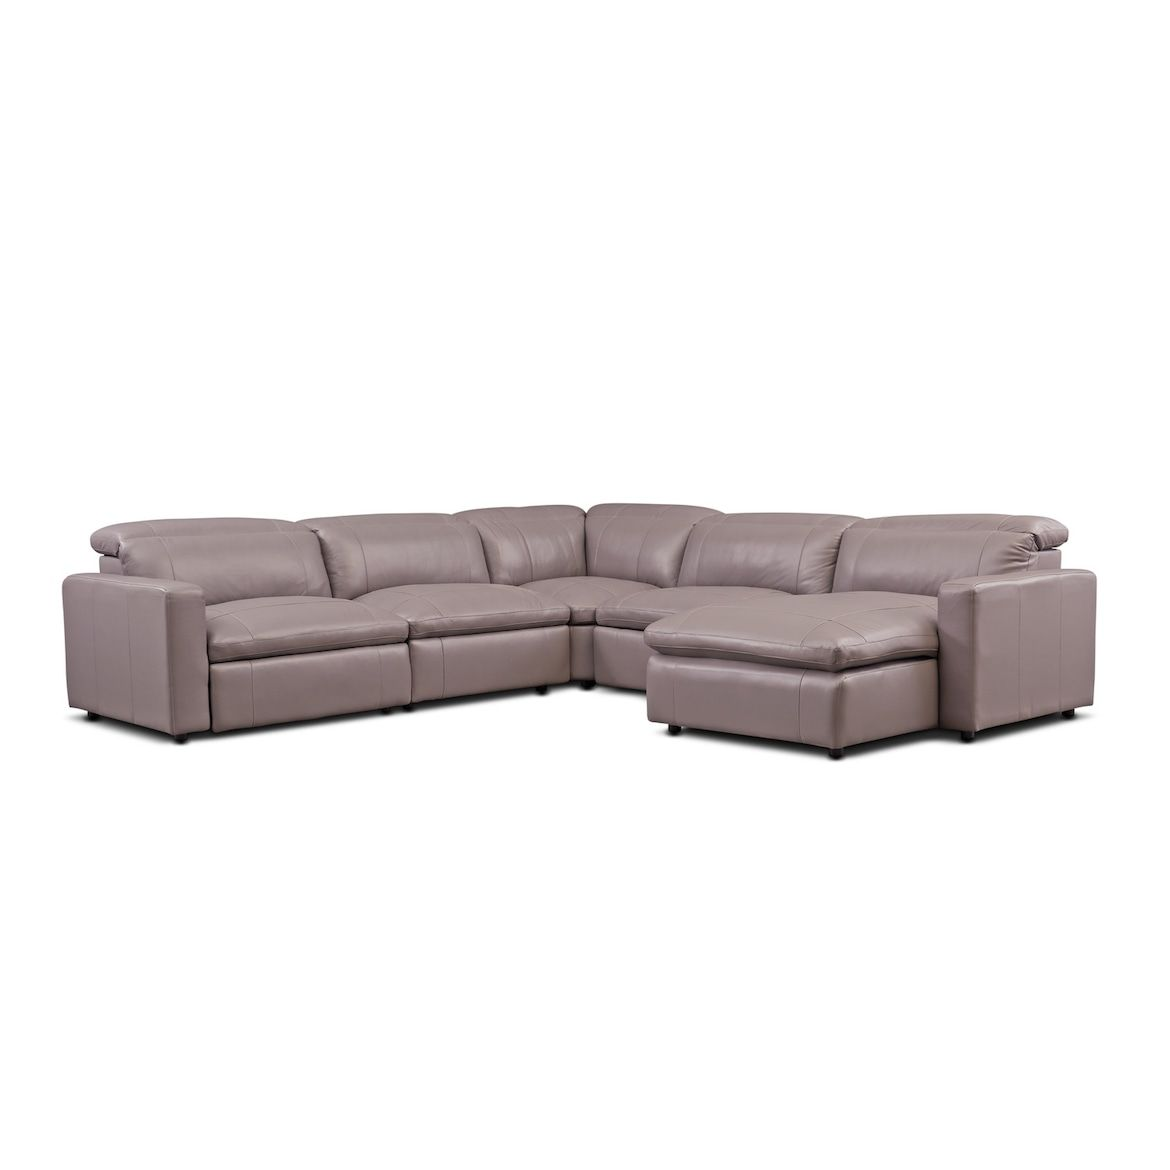 Best Happy 5 Piece Dual Power Reclining Sectional With Chaise 640 x 480